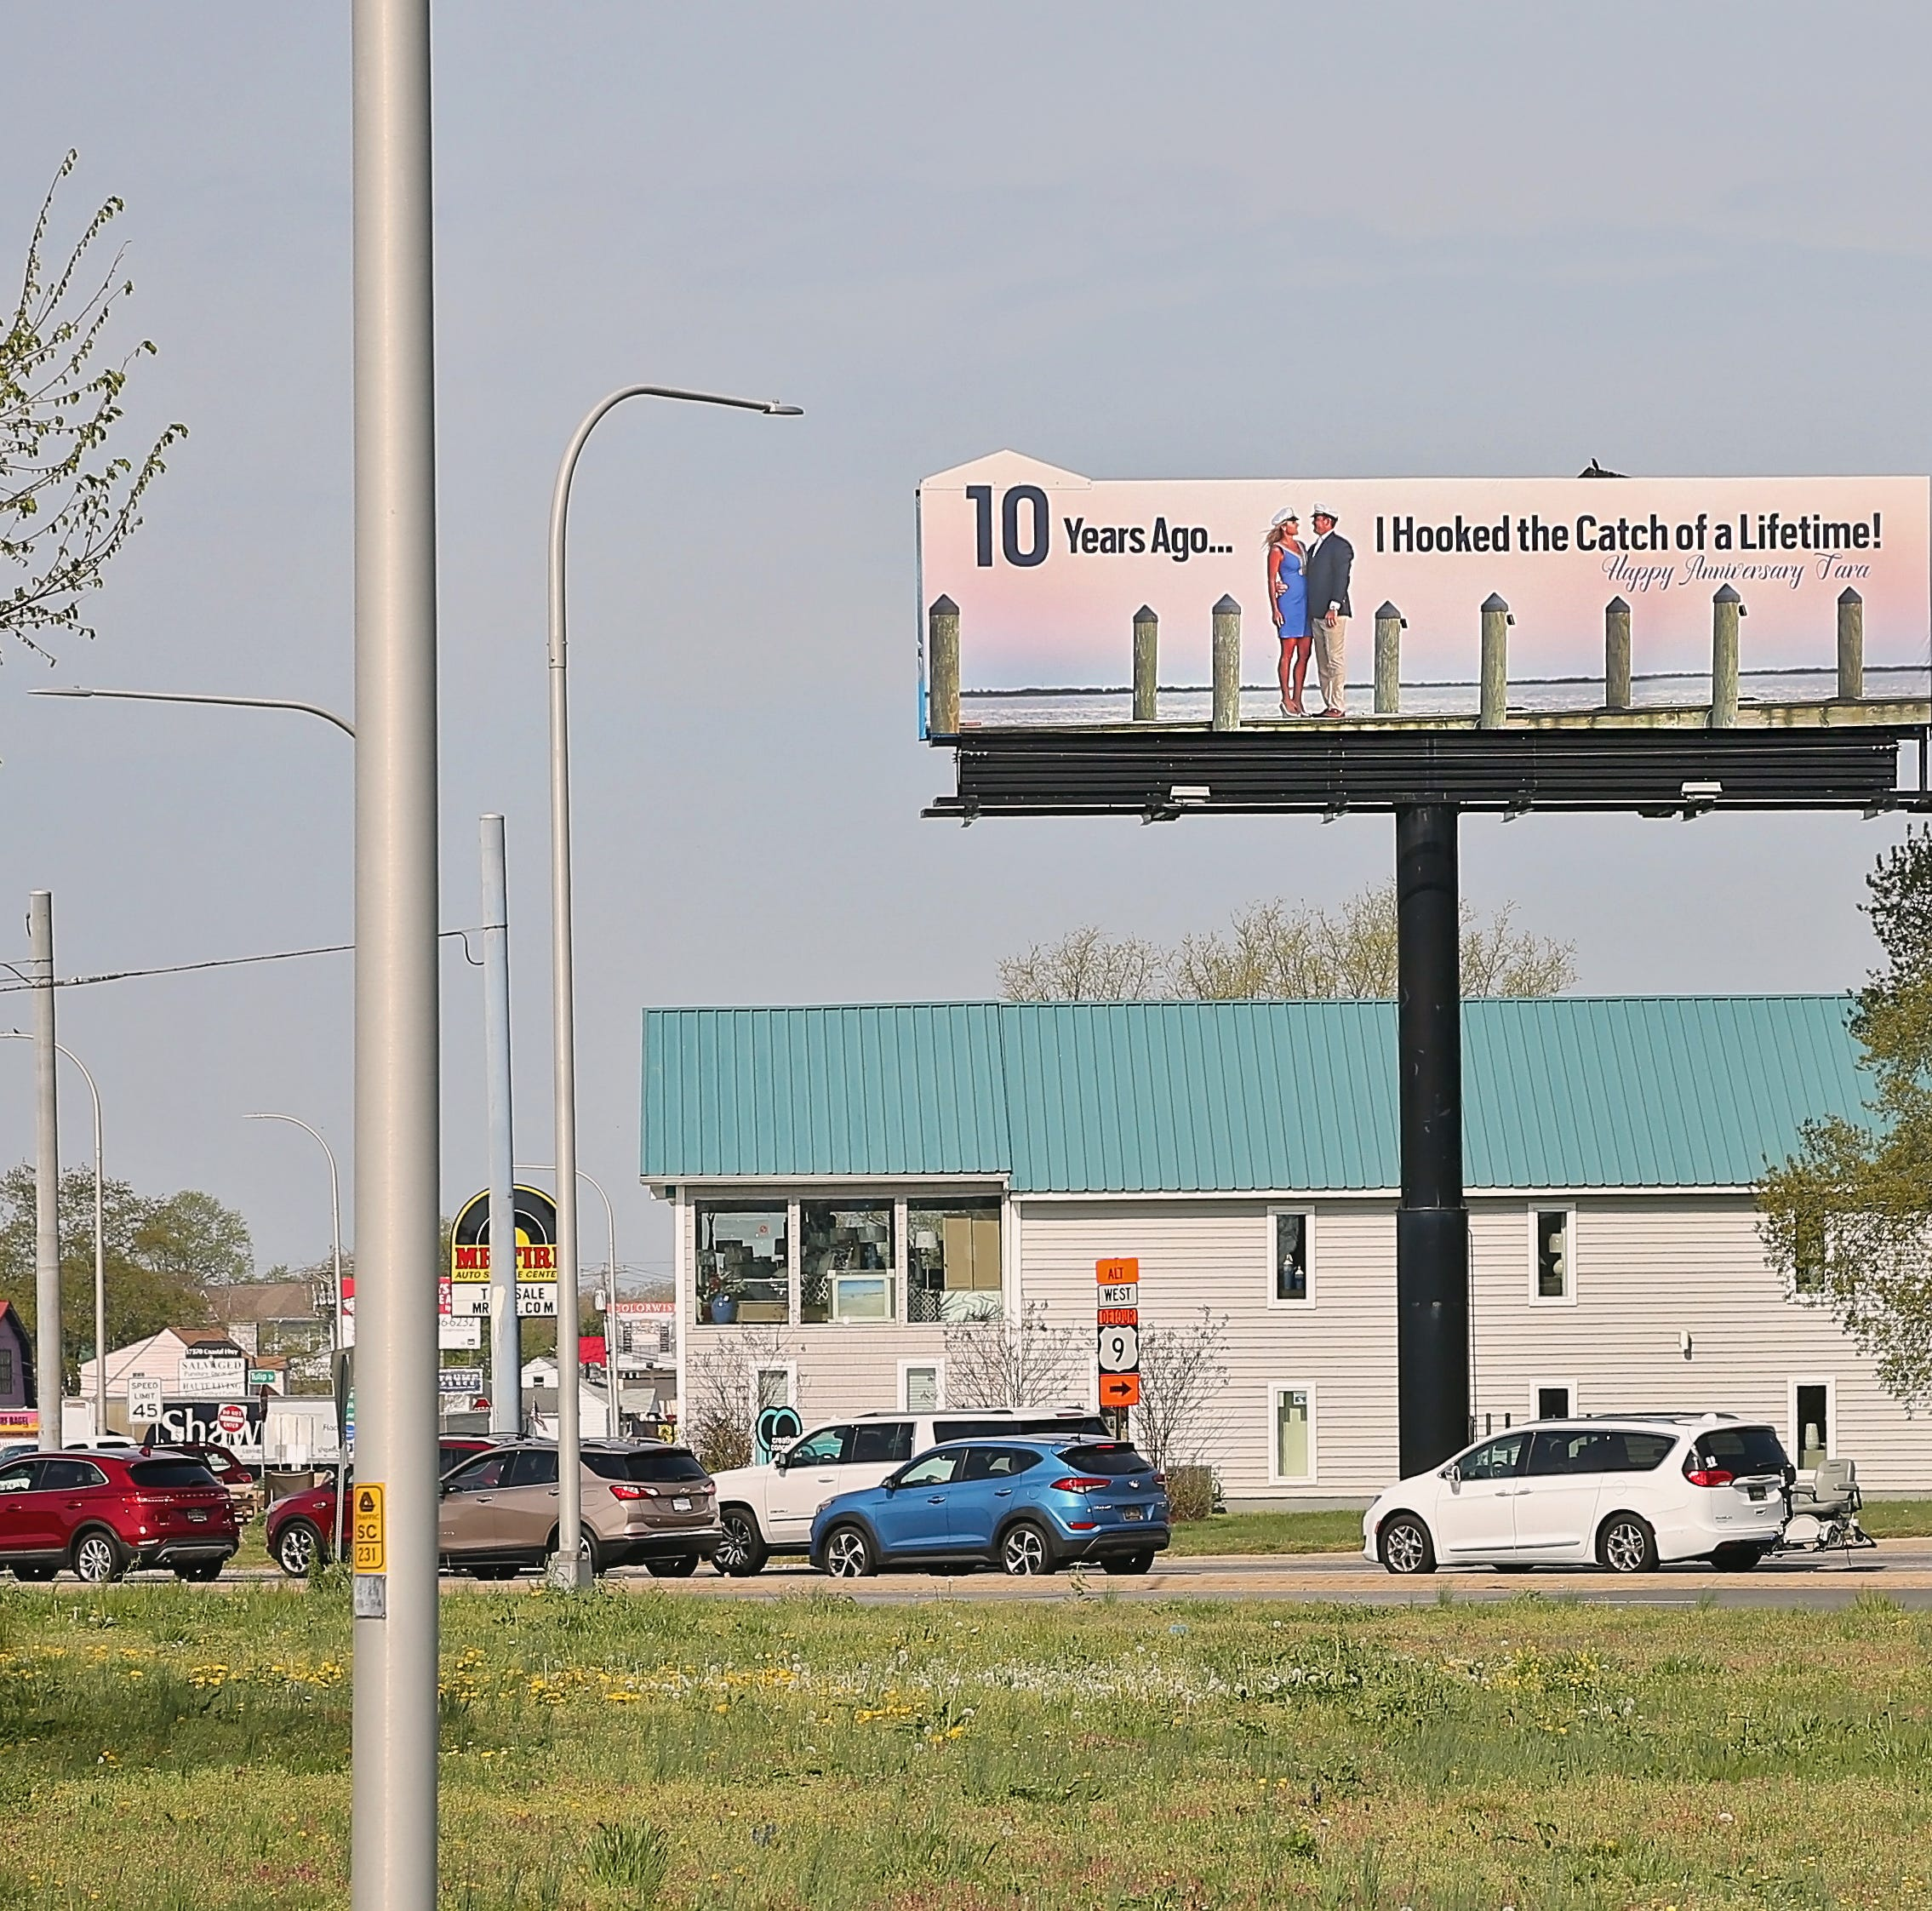 Rehoboth man surprises wife with huge billboard for 10th anniversary